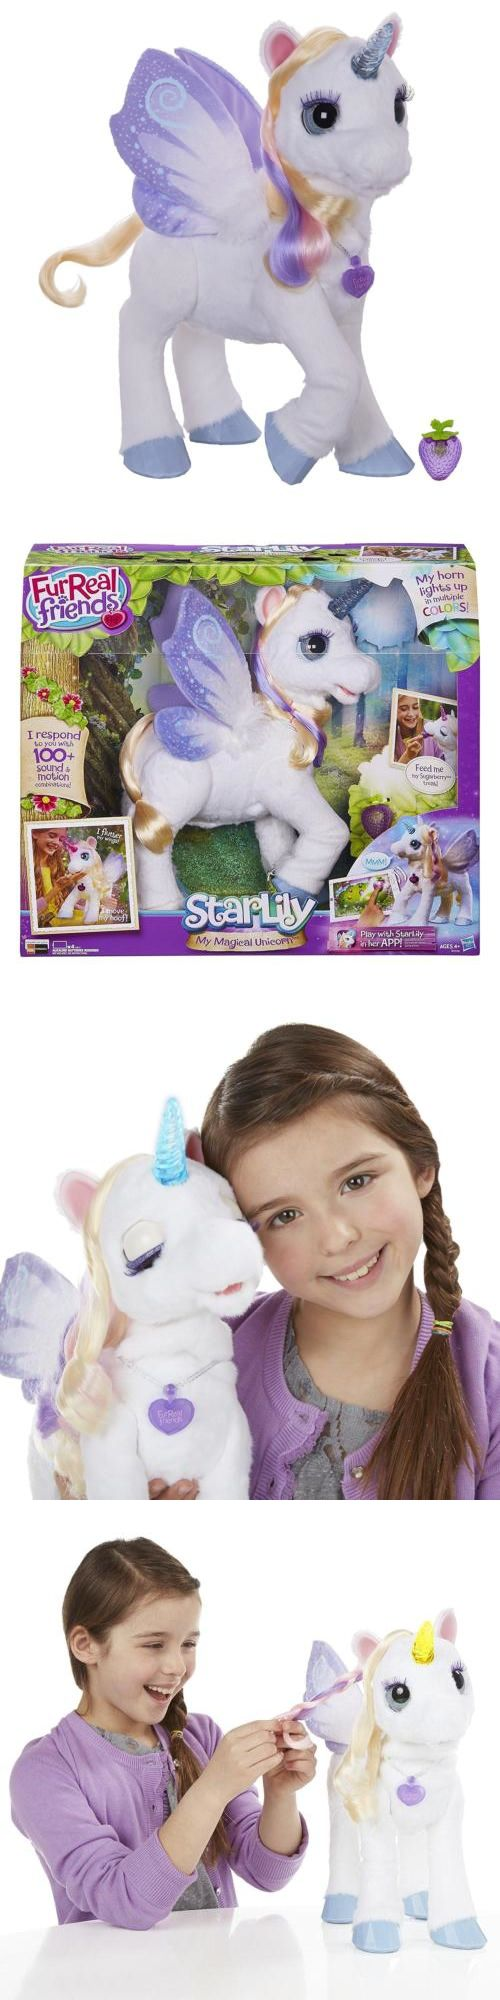 FurReal Friends 38288: Furreal Friends Unicorn Starlily My Magical Unicorn Girls Toy Gift New -> BUY IT NOW ONLY: $131.21 on eBay!